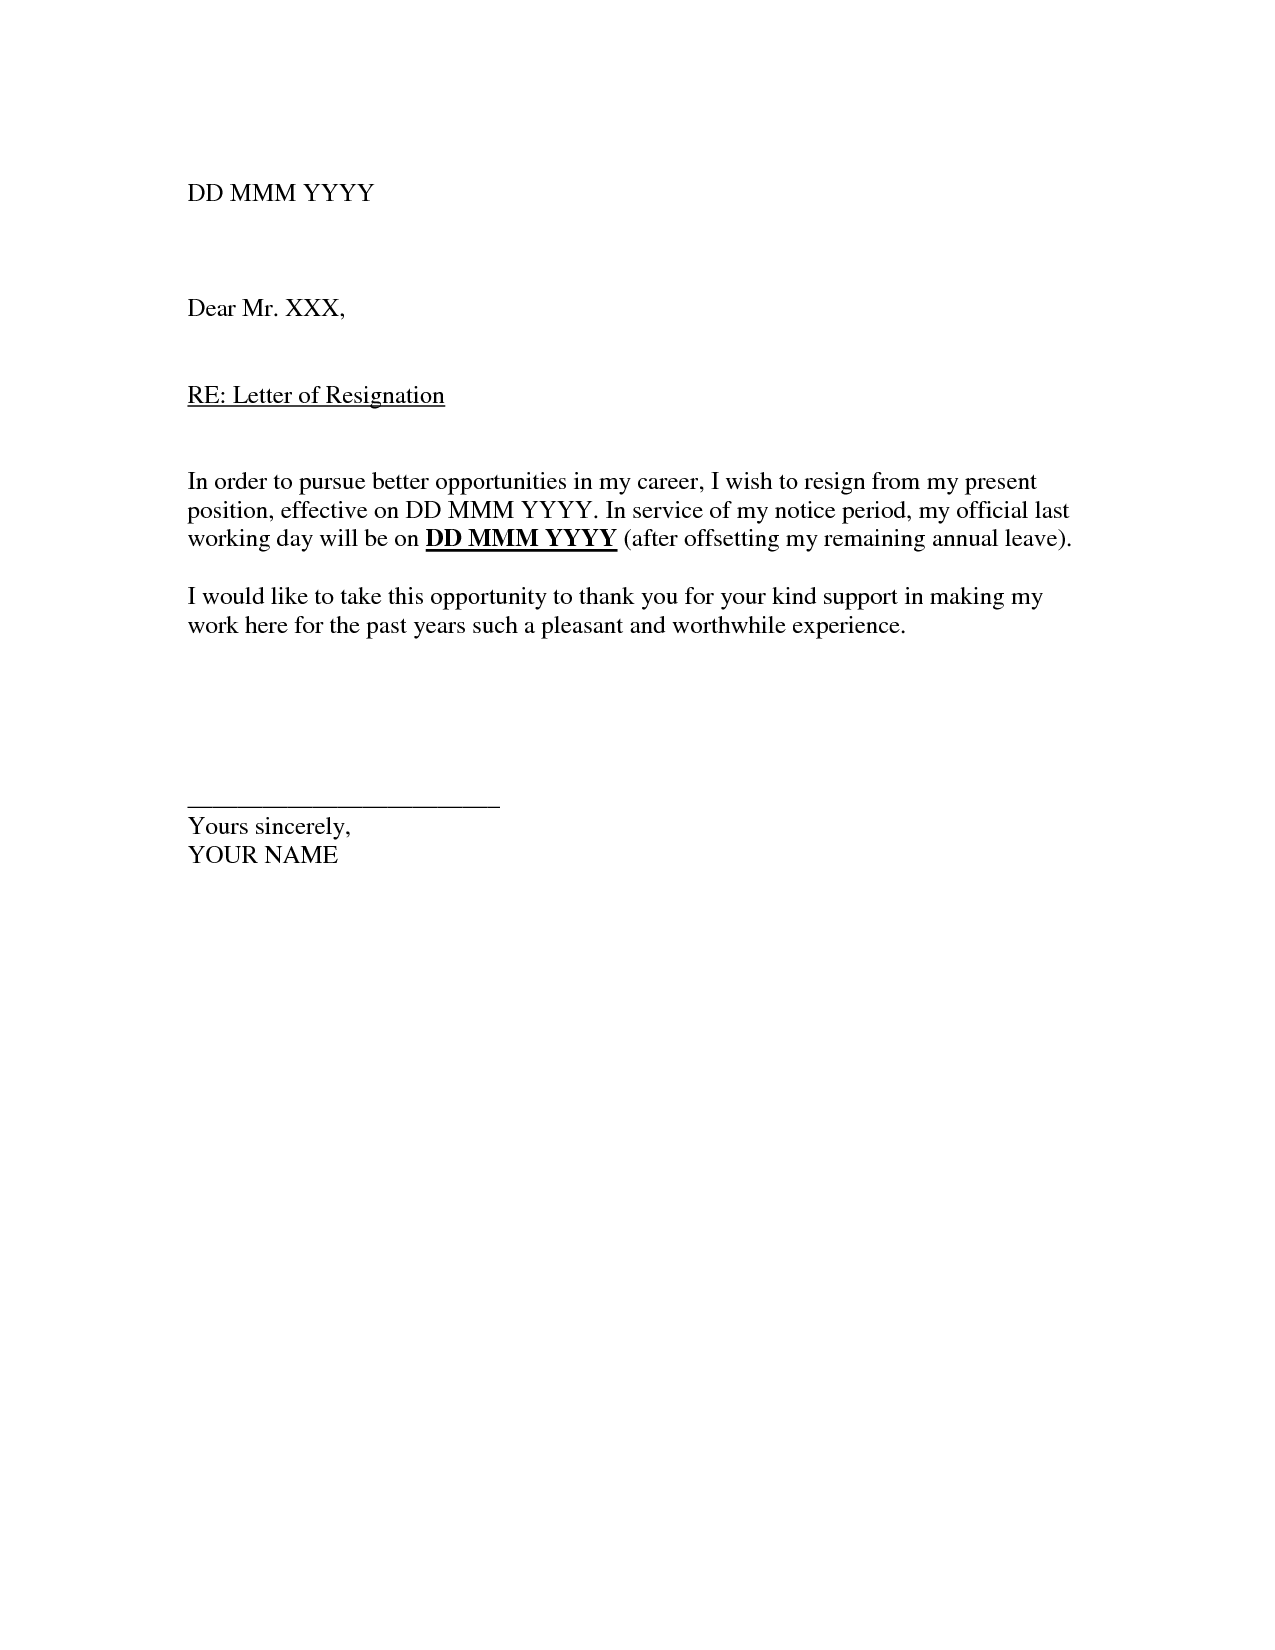 Printable Sample Letter of Resignation Form | Laywers ...